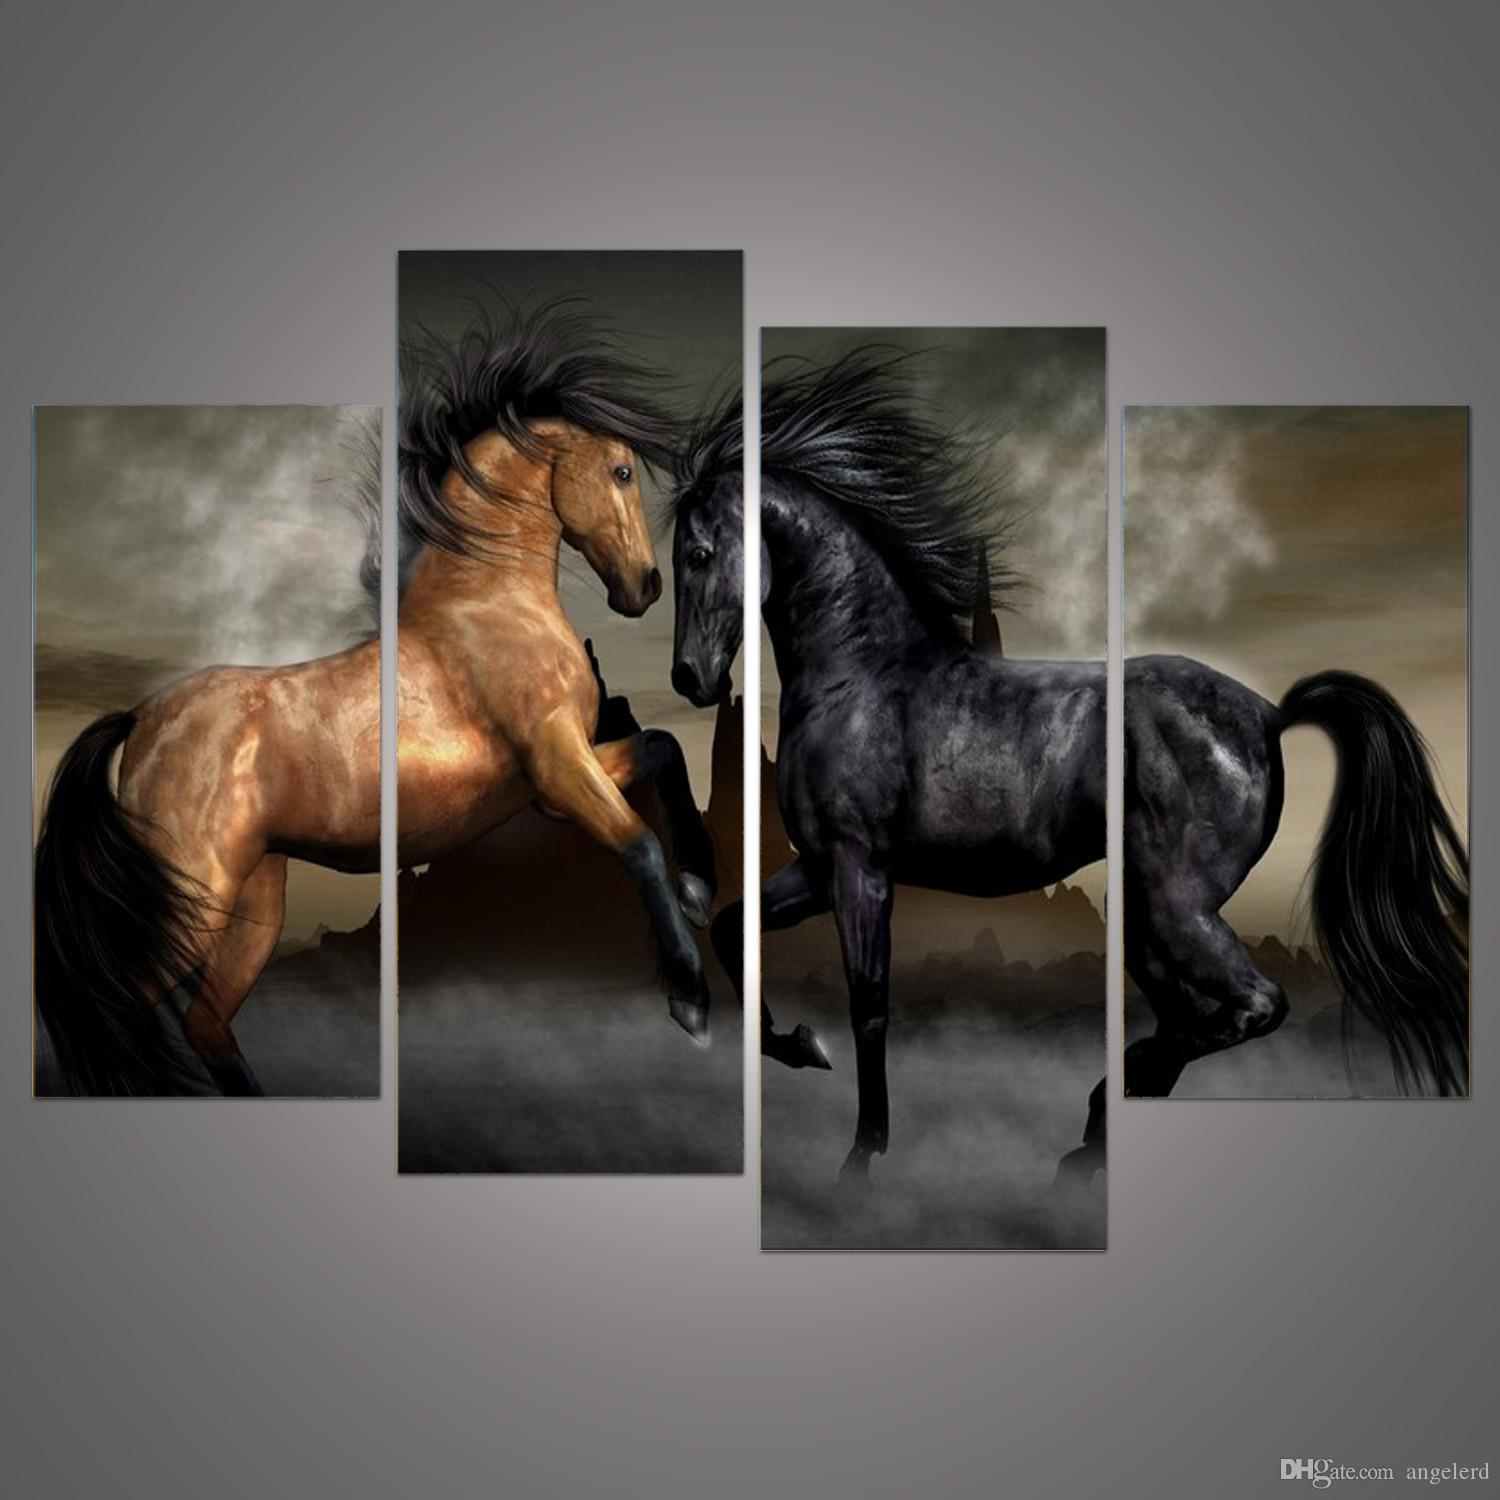 2017 4 Pances Modern Animal Oil Painting Canvas Wall Art Painted Horse Walking Elegant Living Room Bedroom Home Decor H 217 From Angelerd 908